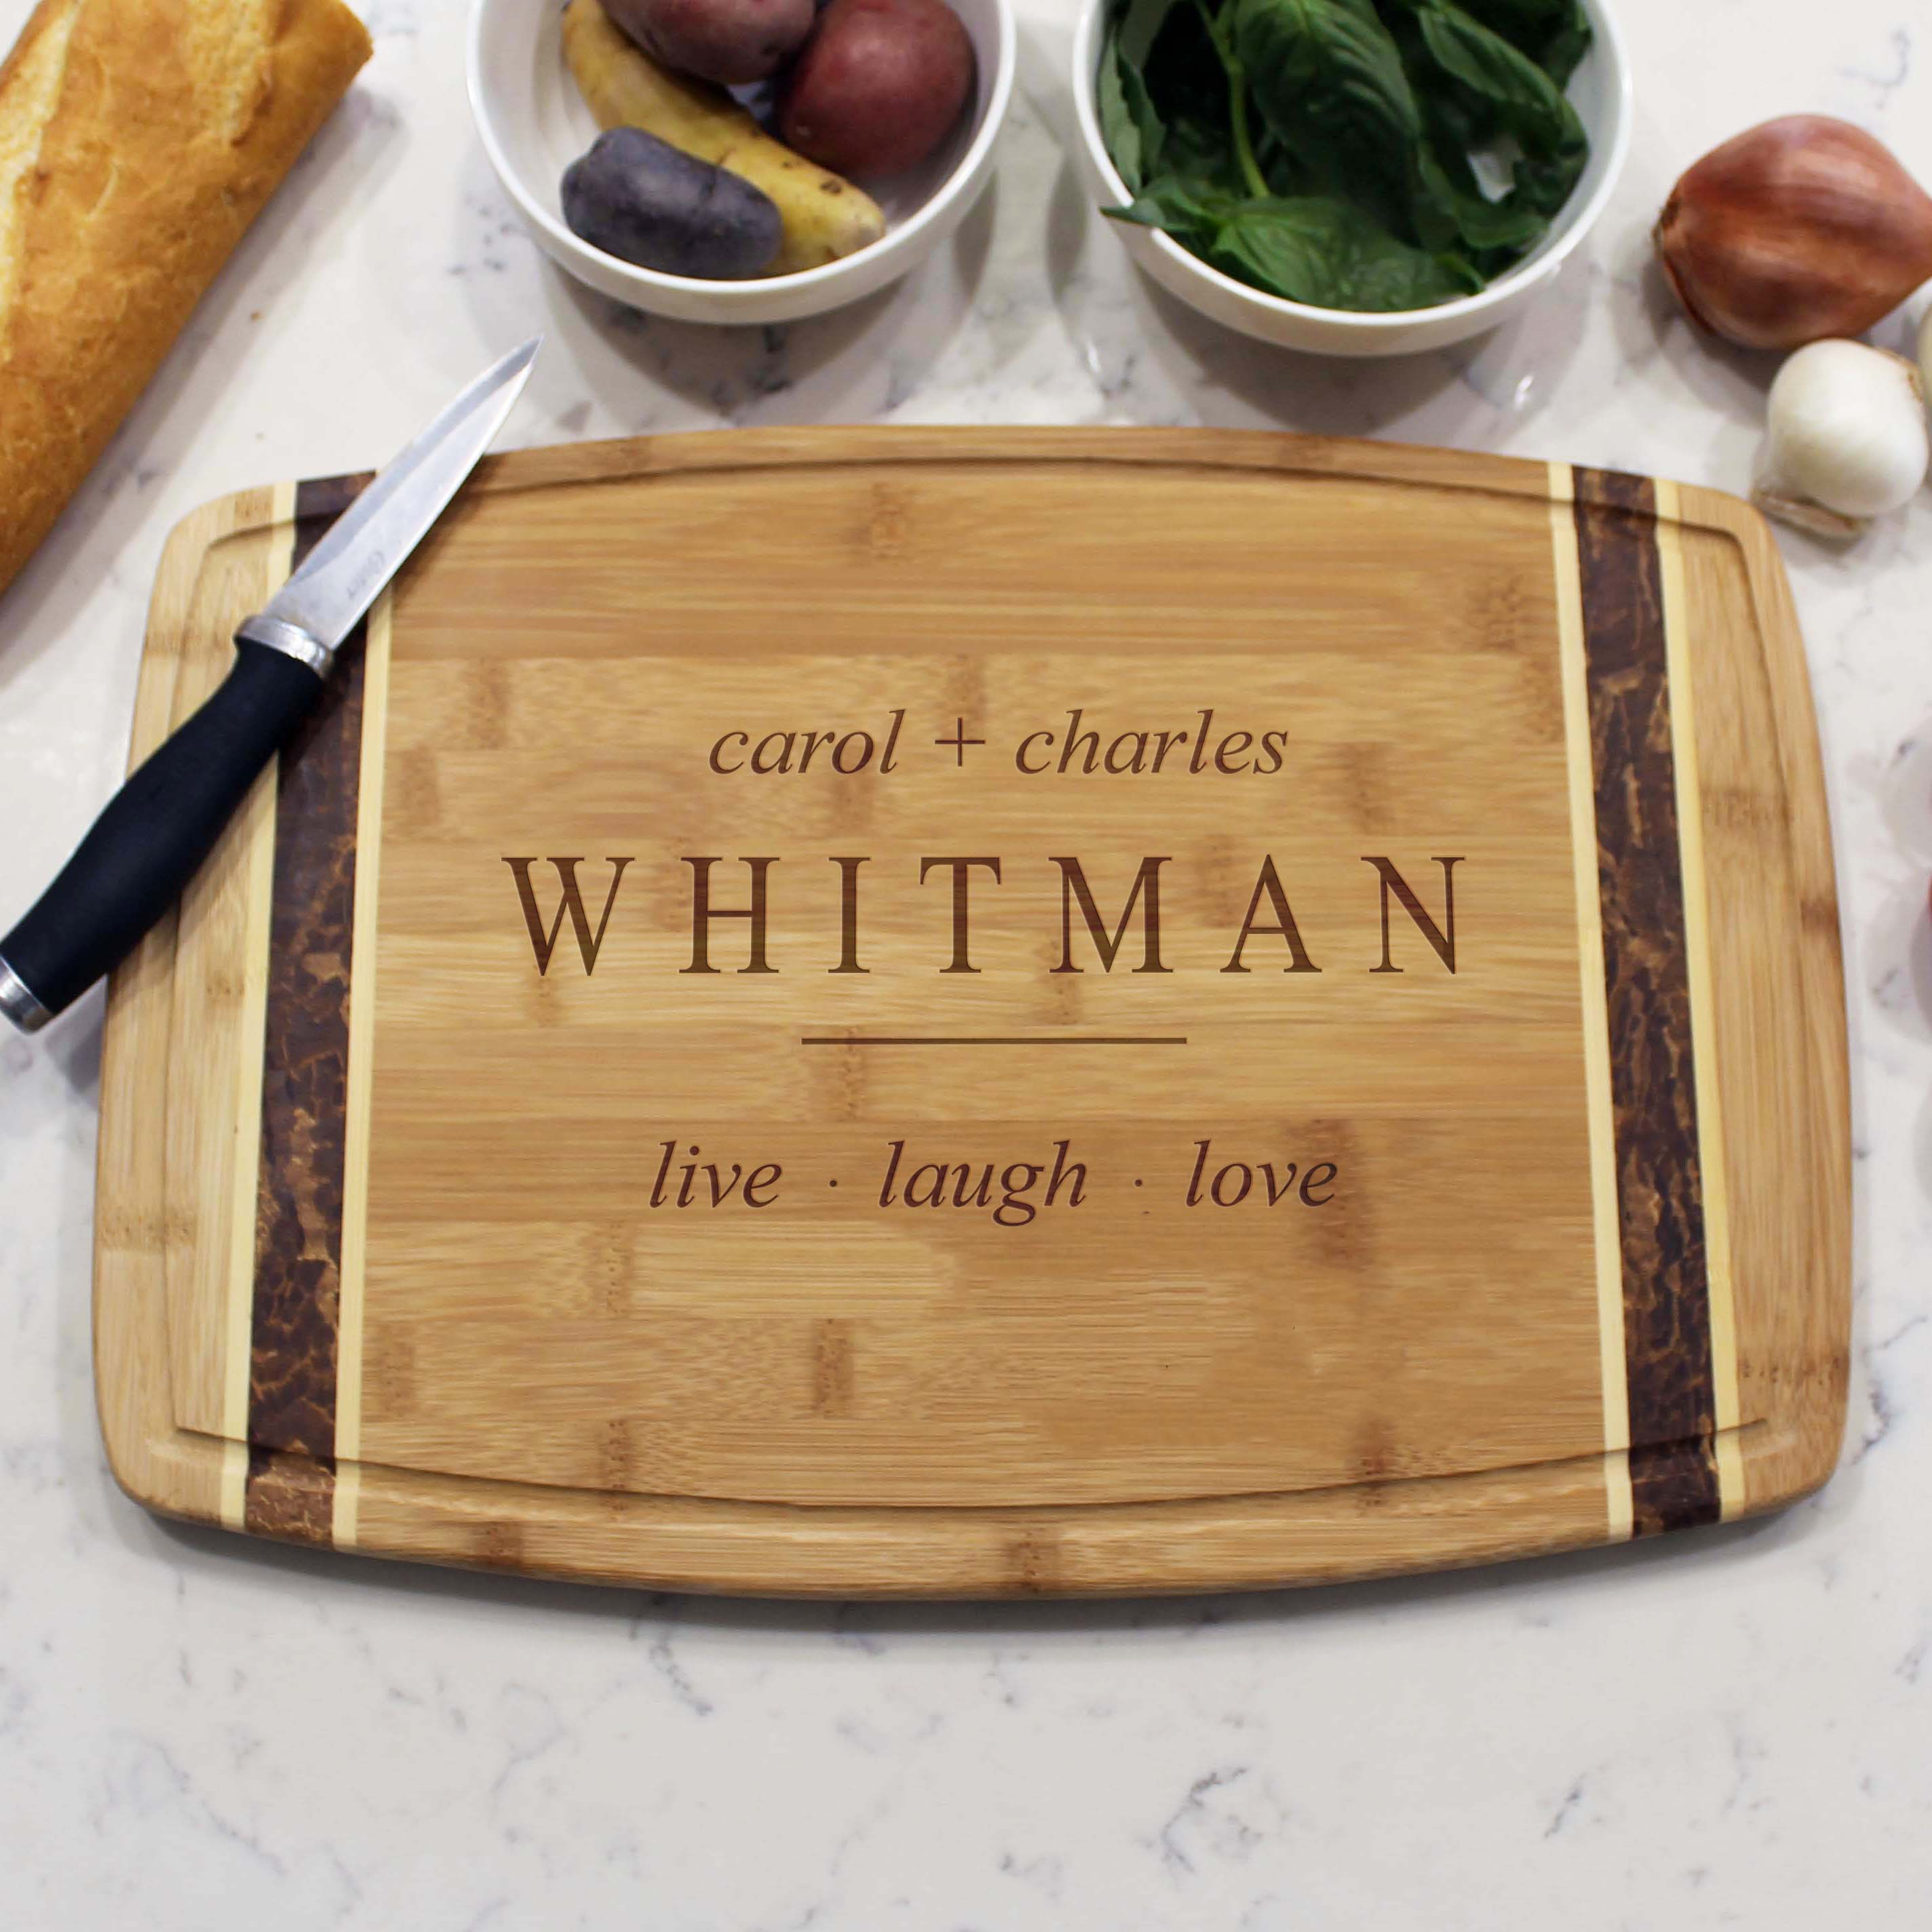 Whitman Personalized Cutting Boards Etchey